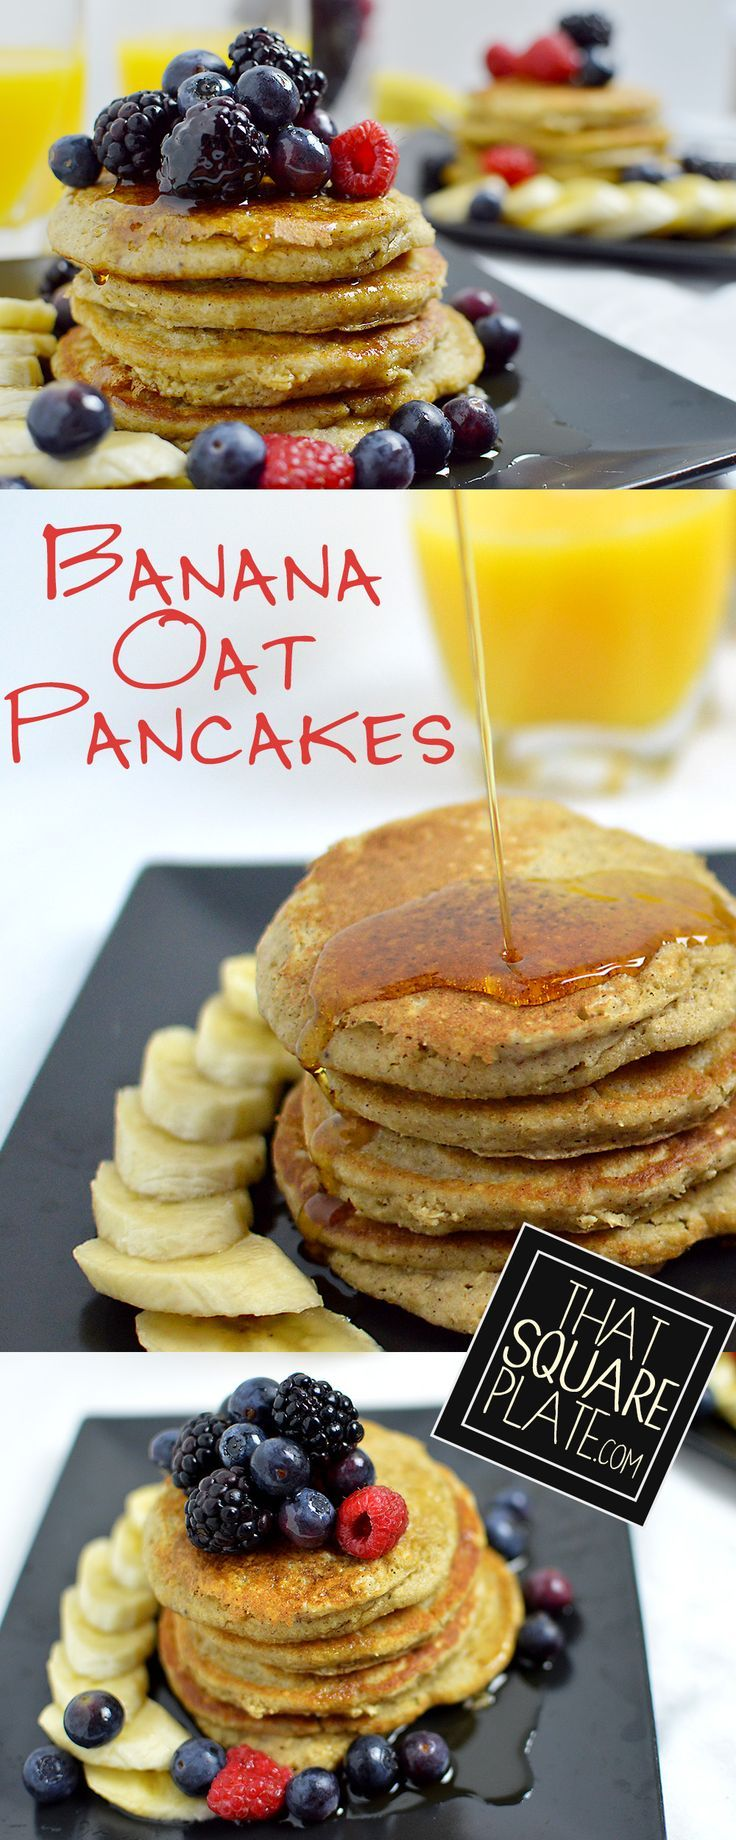 Banana Oat Pancakes | Recipe